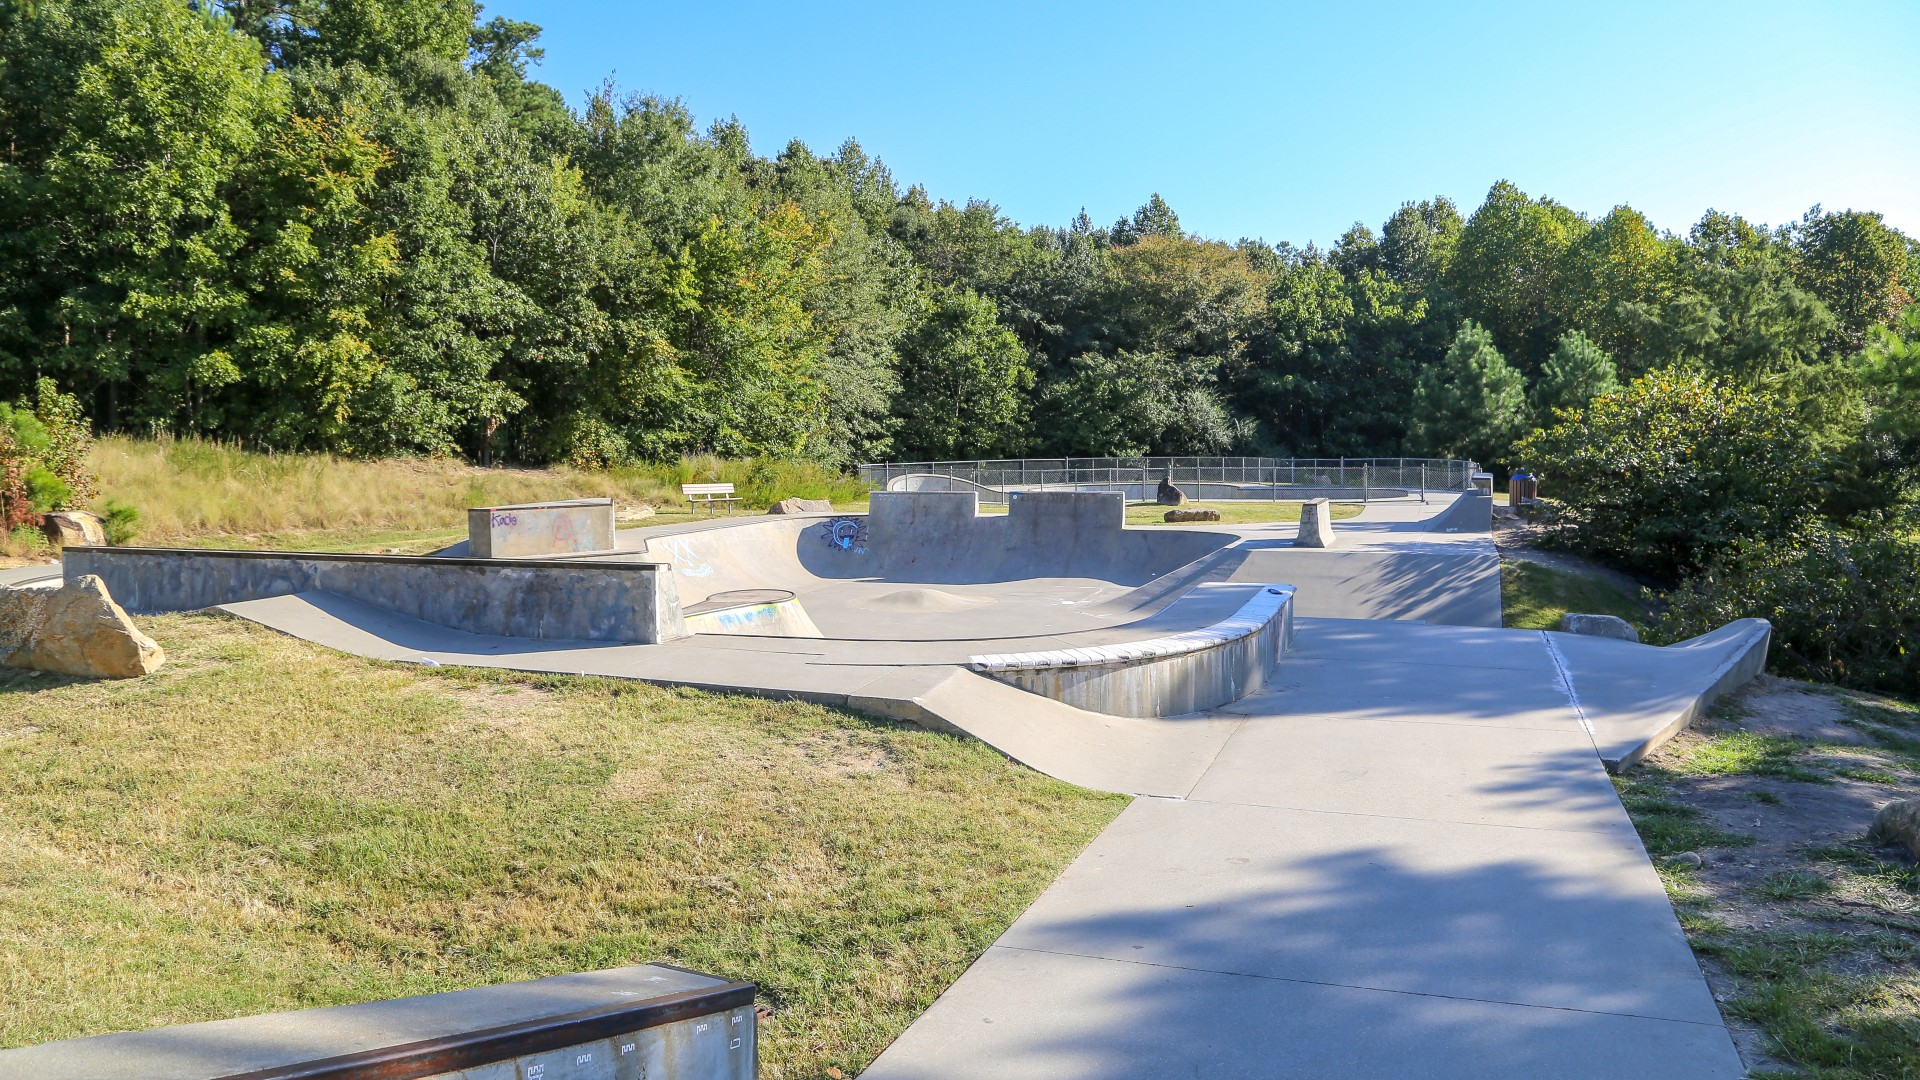 A large outdoor skate park which offers street, flow and bowl elements